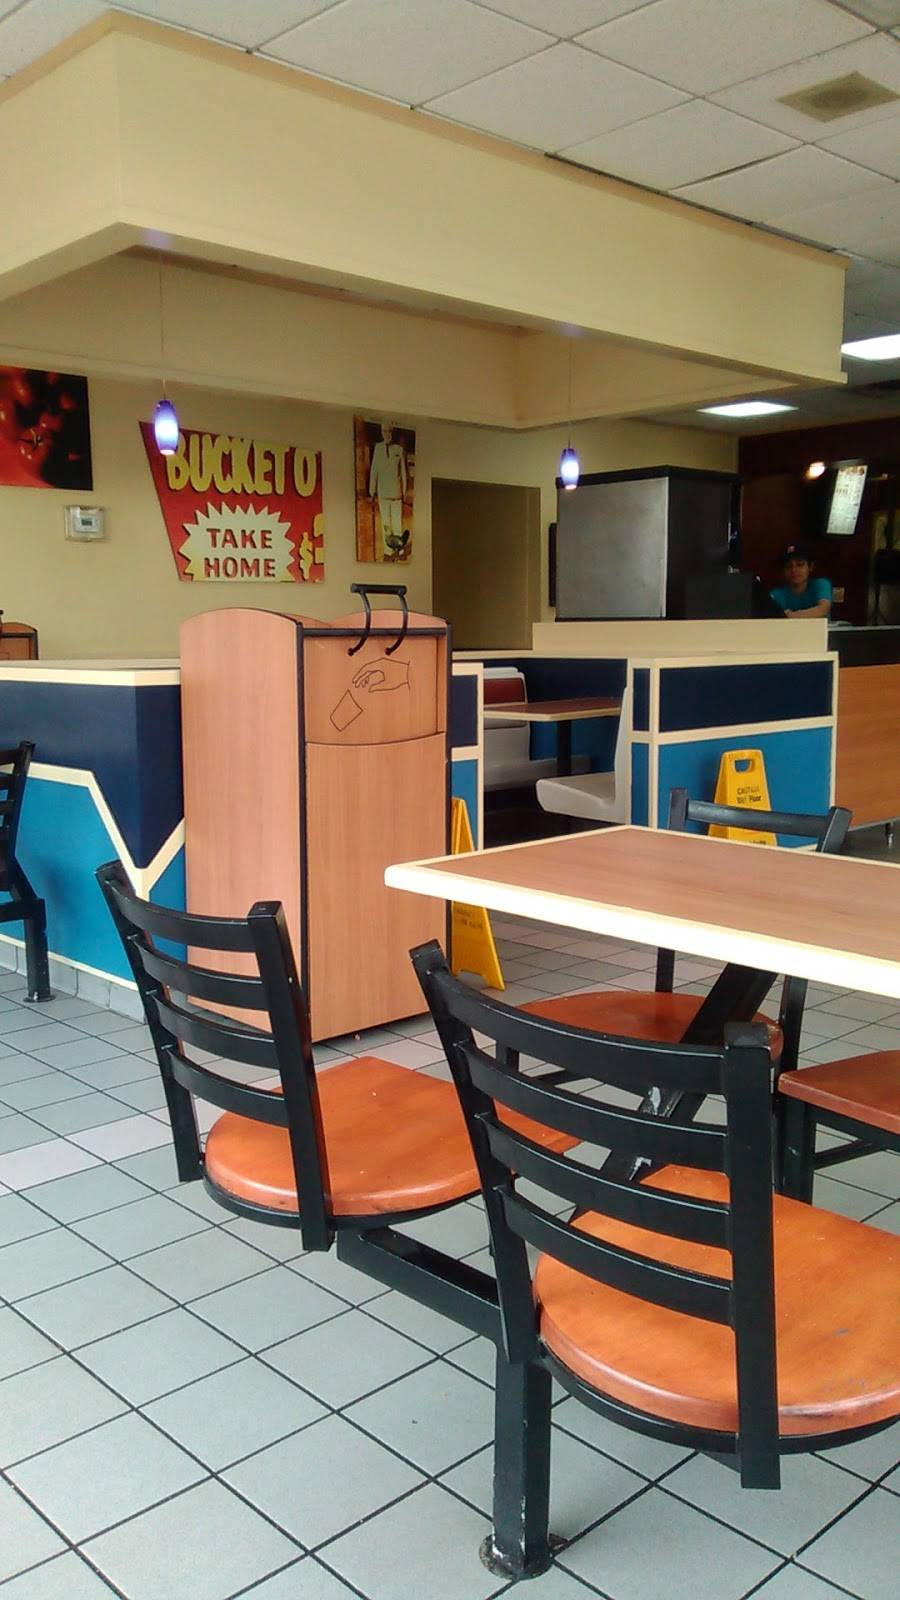 Taco Bell | meal takeaway | 7161 Goreway Dr, Mississauga, ON L4T 2T5, Canada | 9056773813 OR +1 905-677-3813